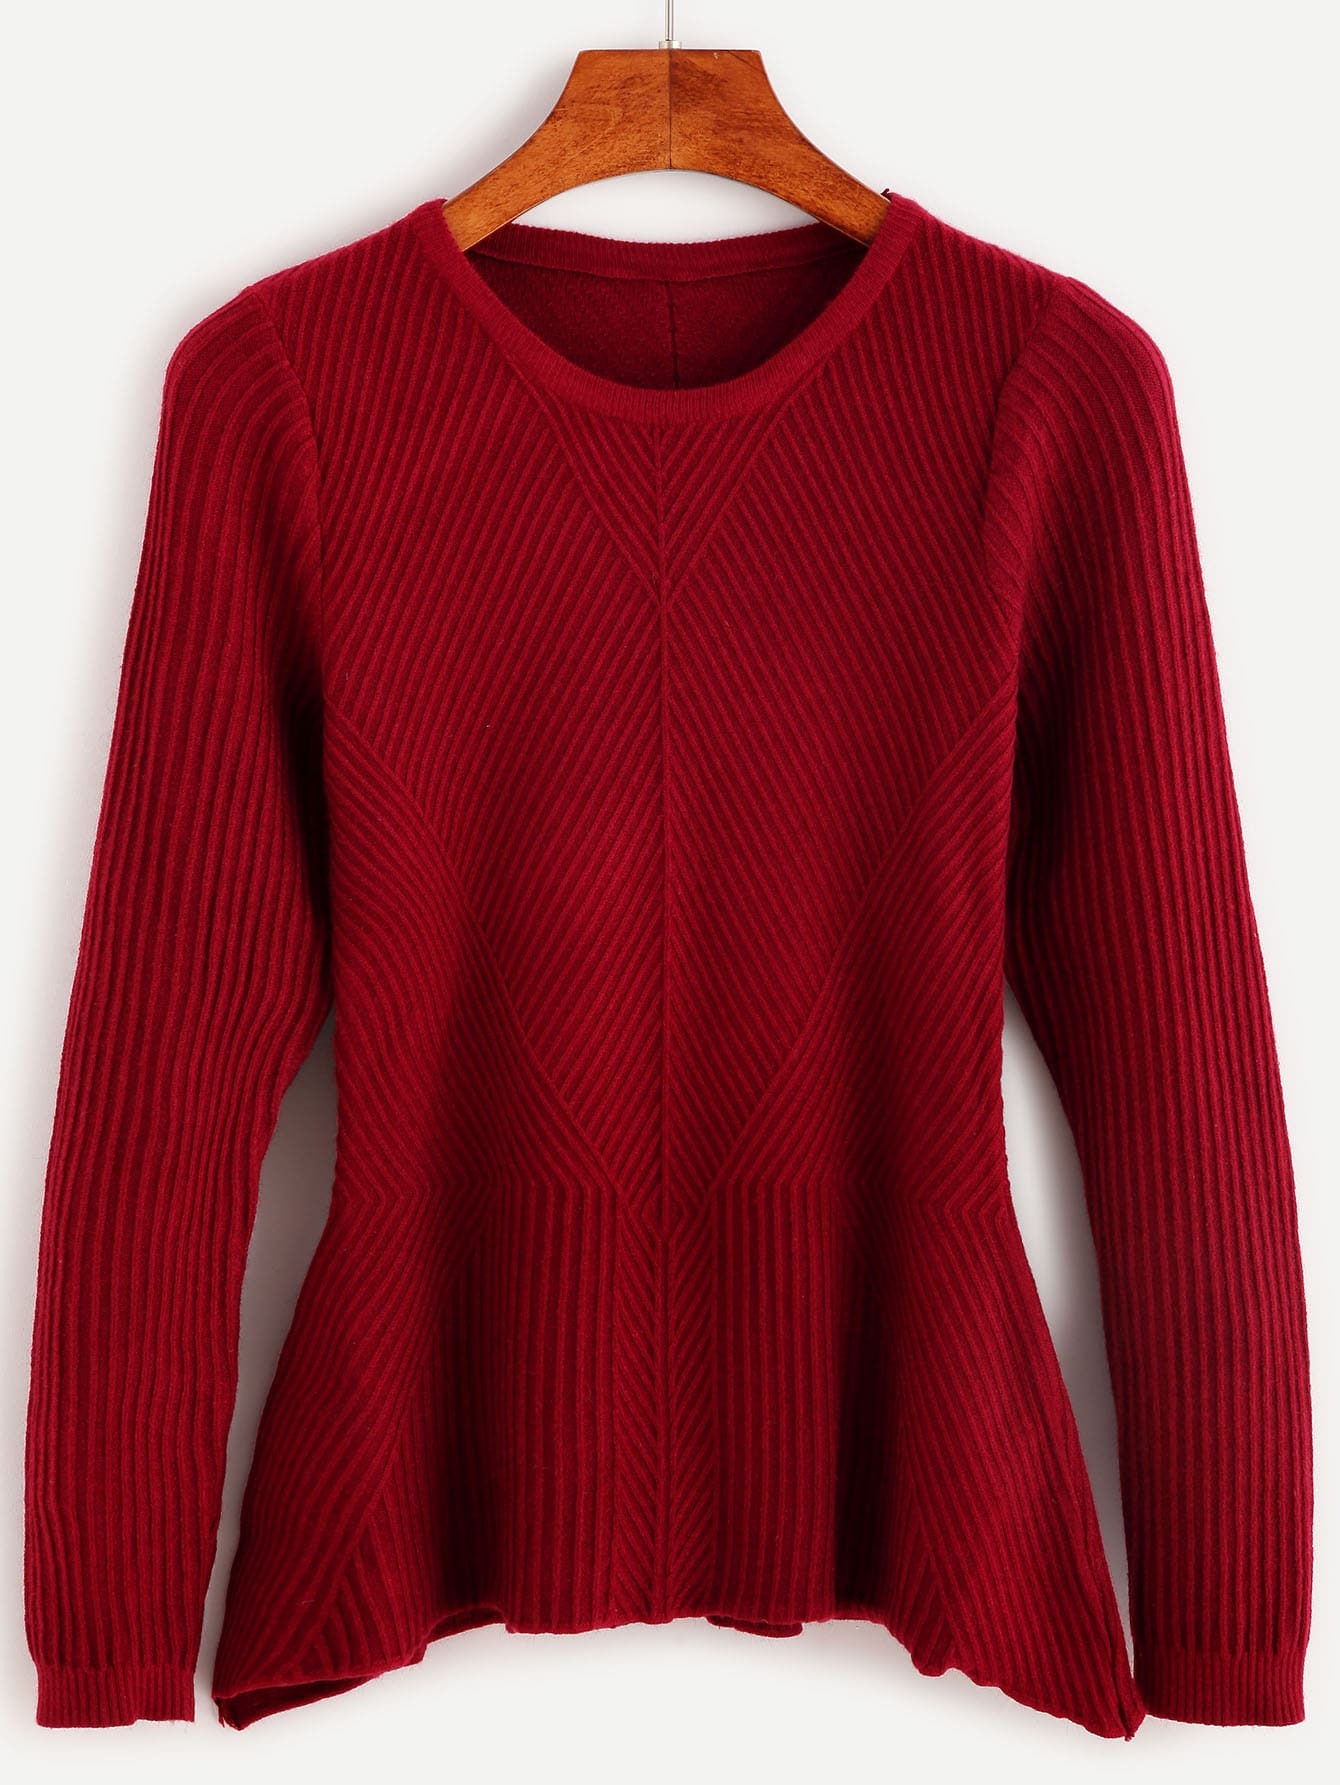 Burgundy Ribbed Peplum Sweater sweater160928105